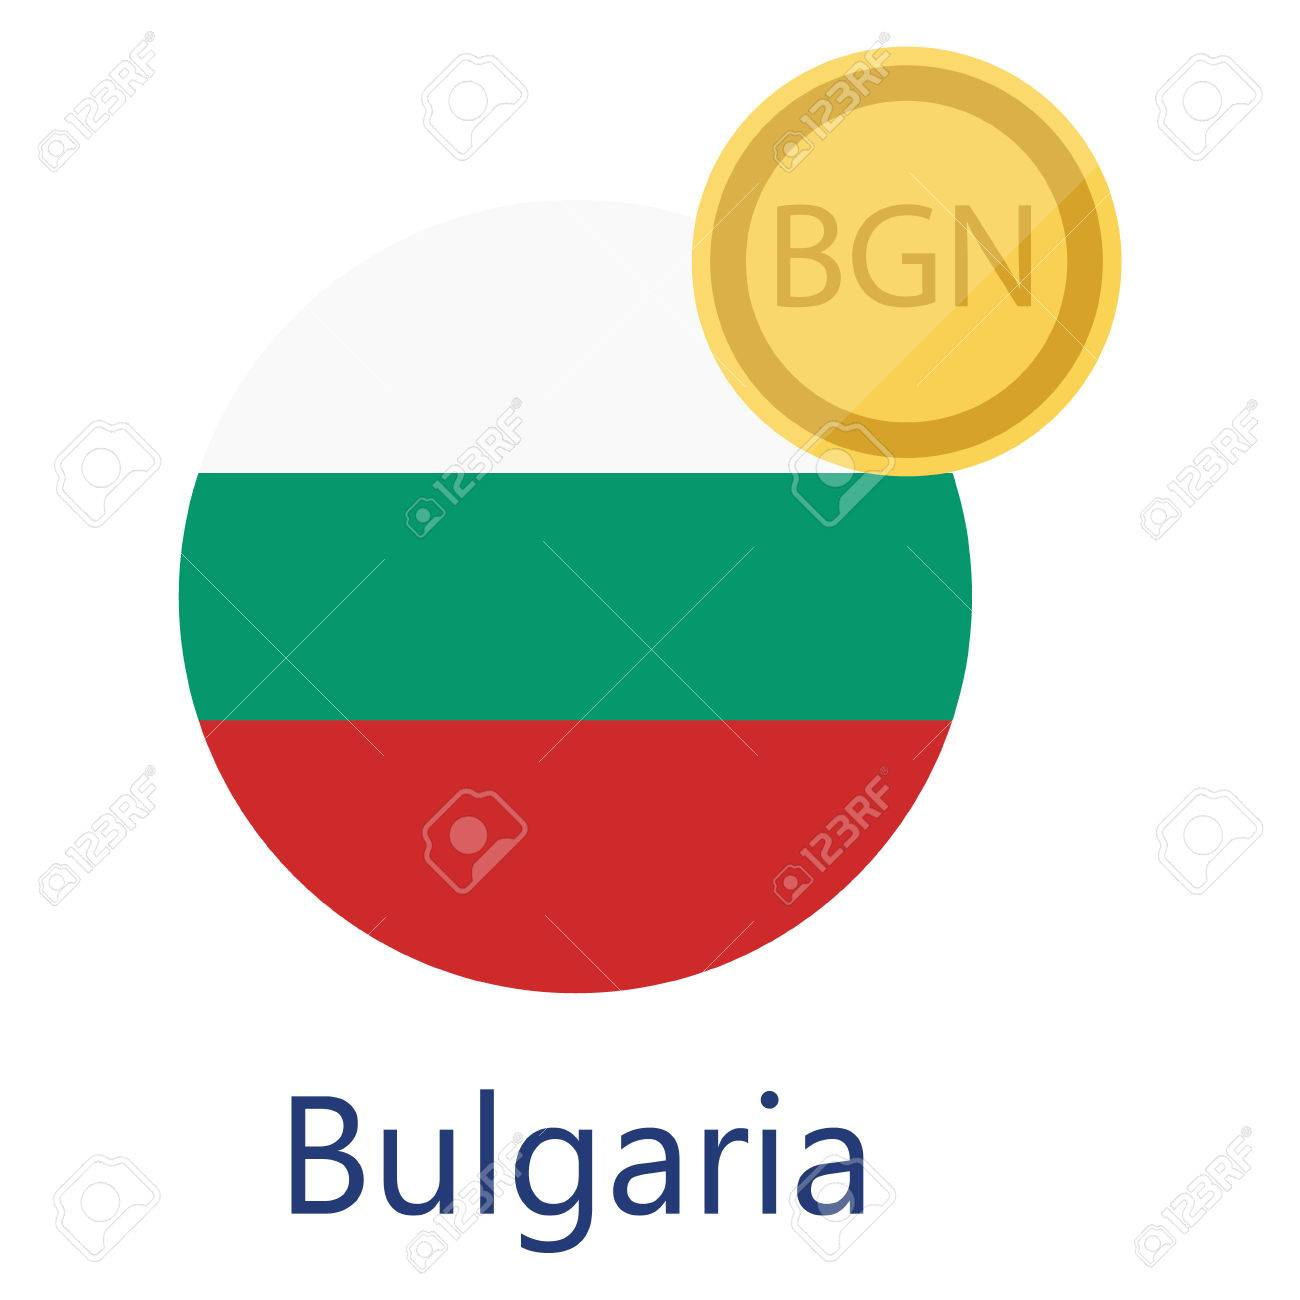 Vector illustration bulgarian round flag and currency symbols vector illustration bulgarian round flag and currency symbols bgn bulgarian lev bulgaria stock vector biocorpaavc